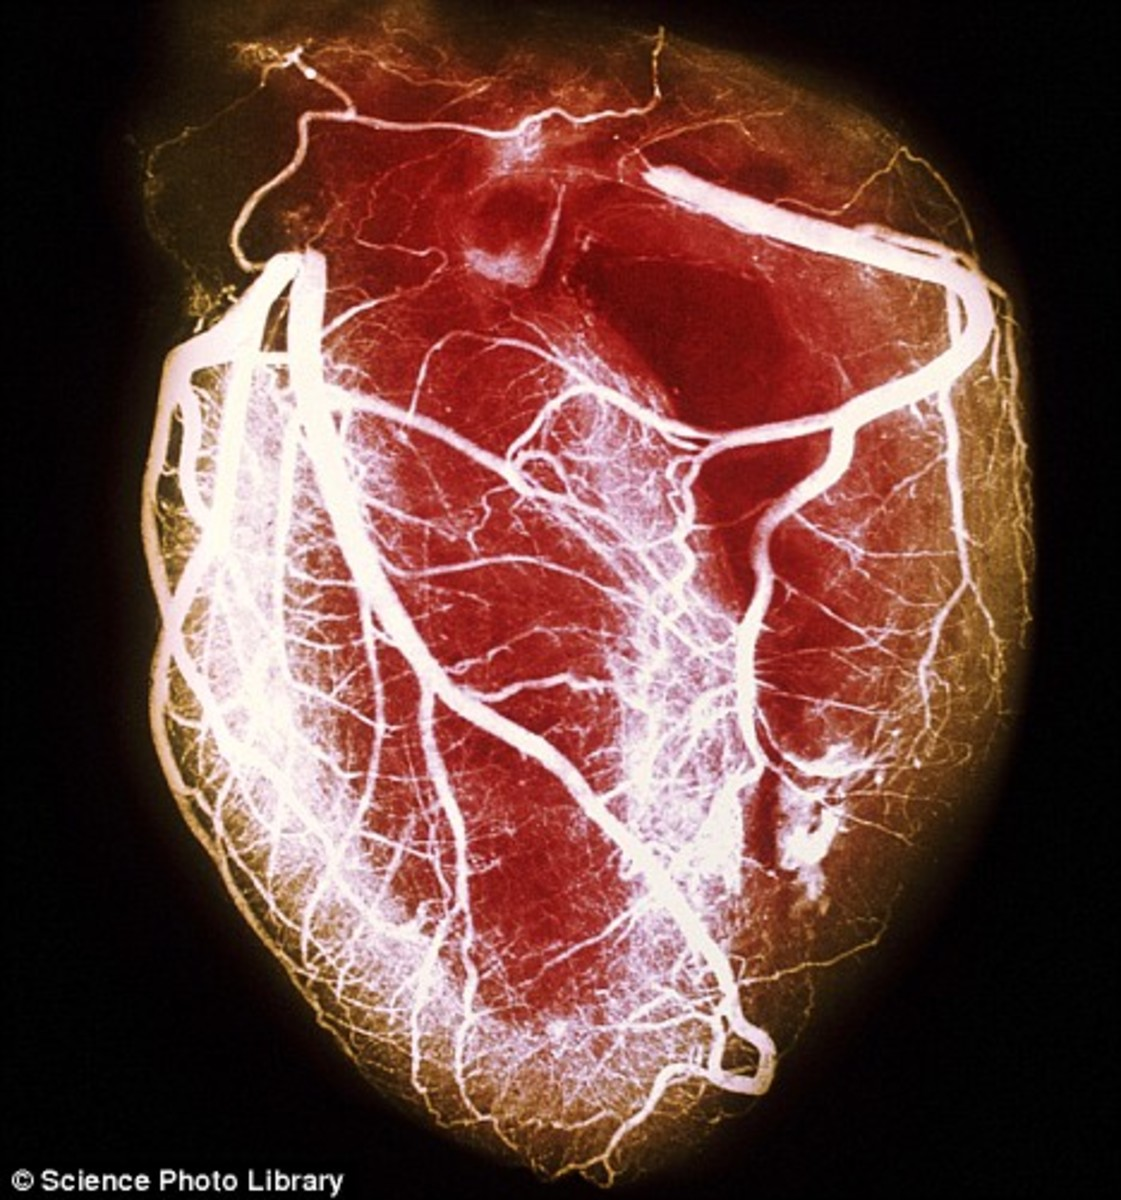 Heart Showing Arteries Become Occluded  source Medicinenet